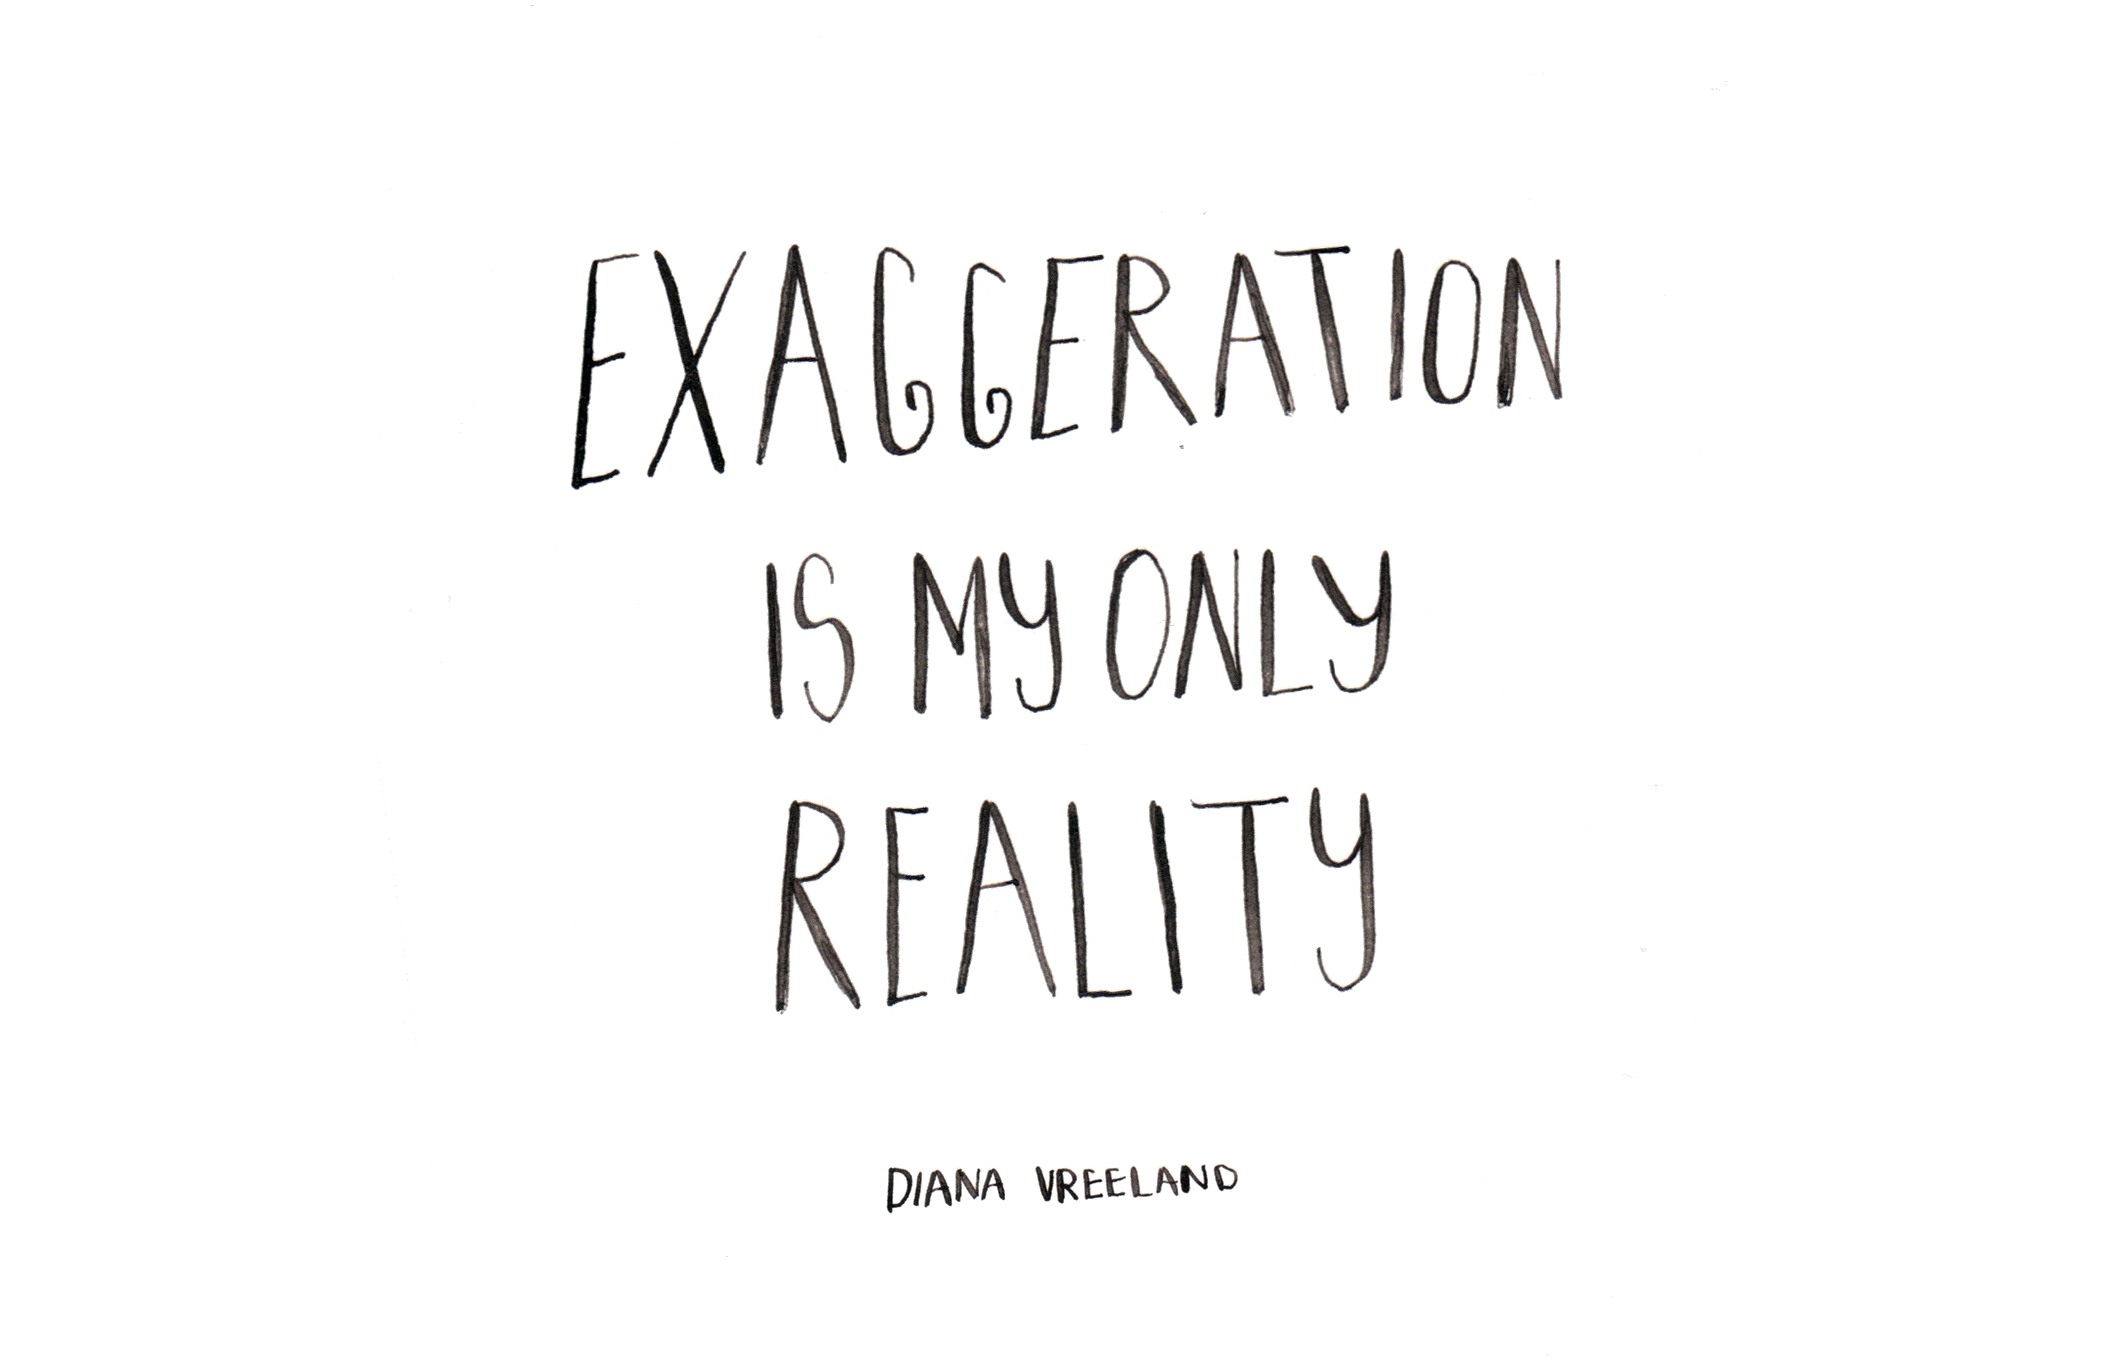 Exagertaion is my own reality. Diana Vreeland. Custom Type by Alicia Carvalho | www.alicia-carvalho.com